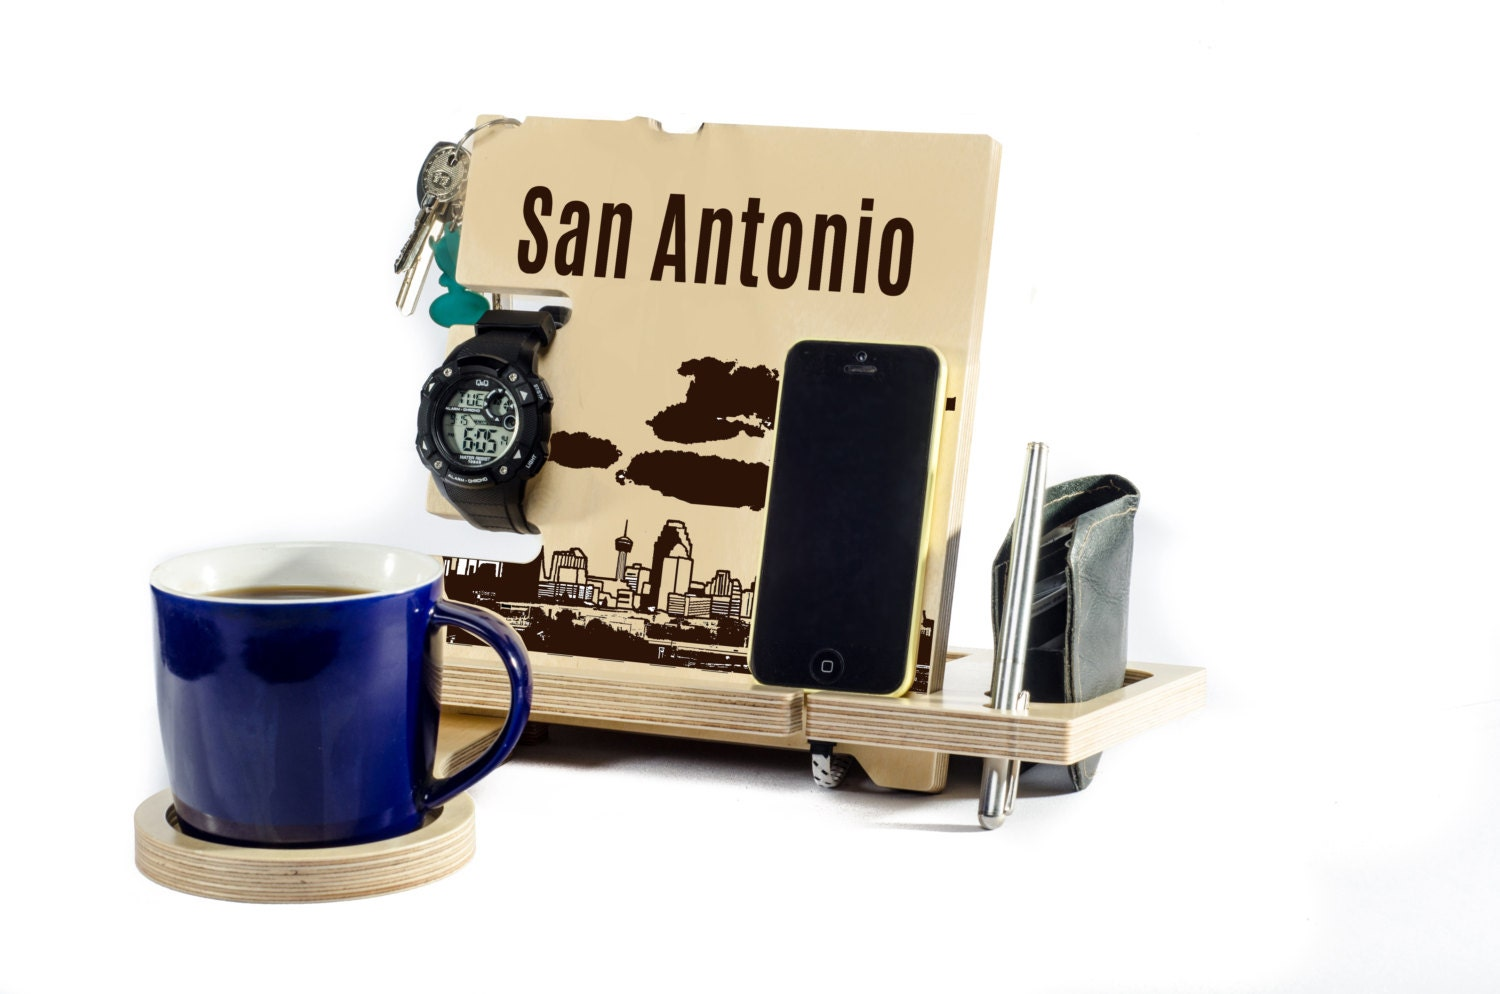 Texas San Antonio Home Decor San Antonio Design San Antonio